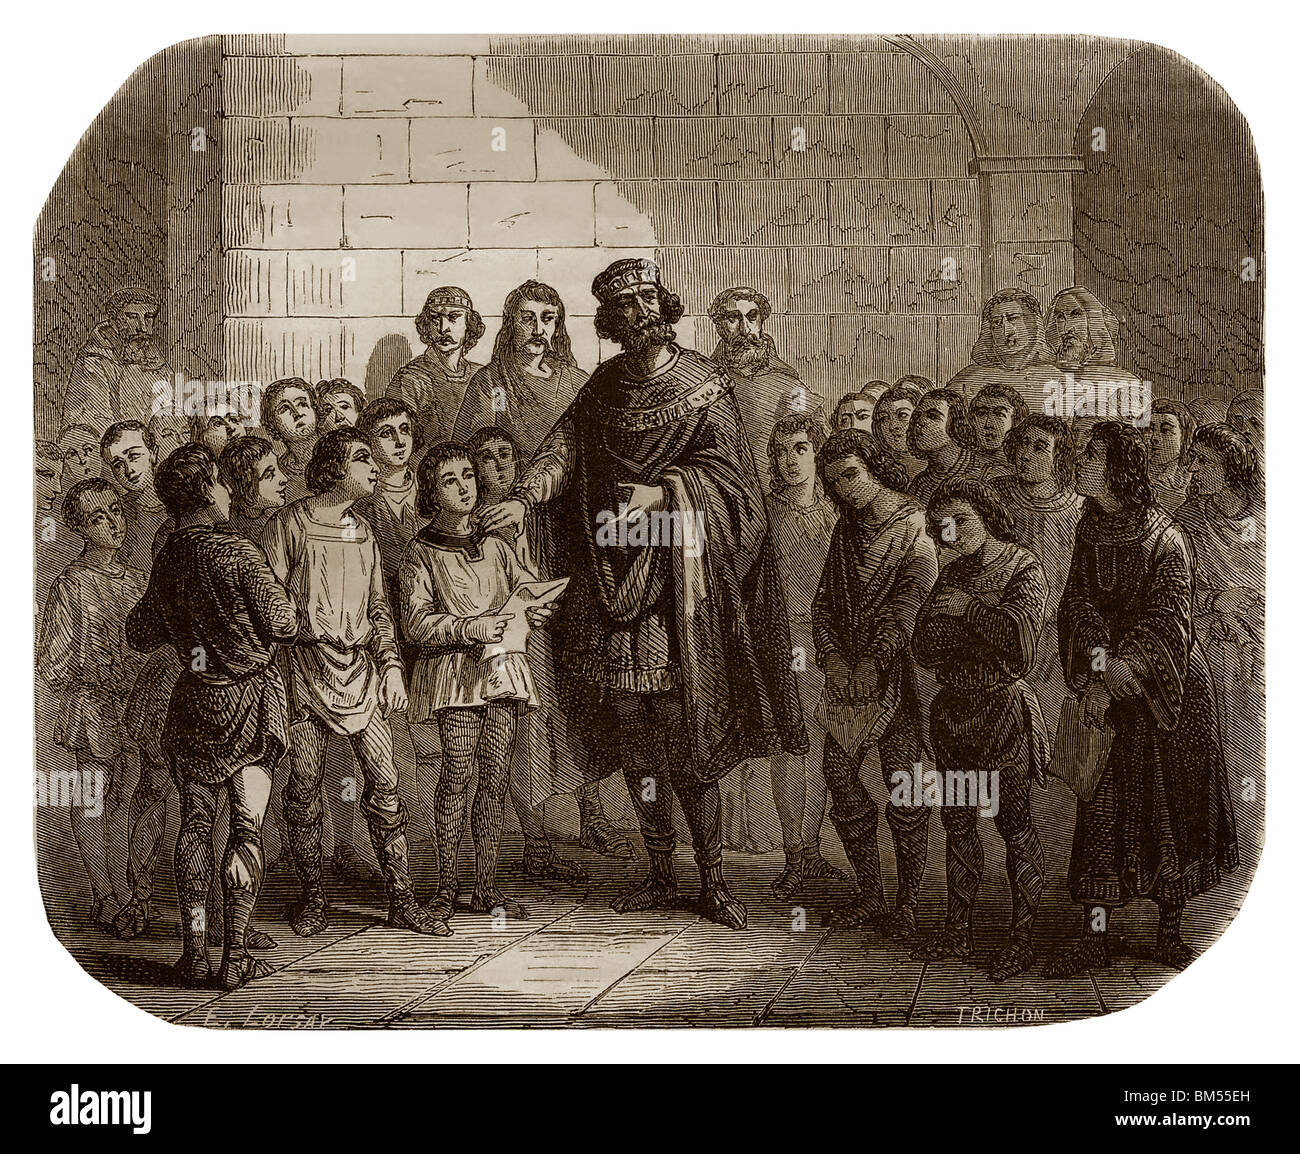 Charlemagne in schools in the late 8th and 9th centuries: Charlemagne created schools in bishoprics and in monasteries. - Stock Image